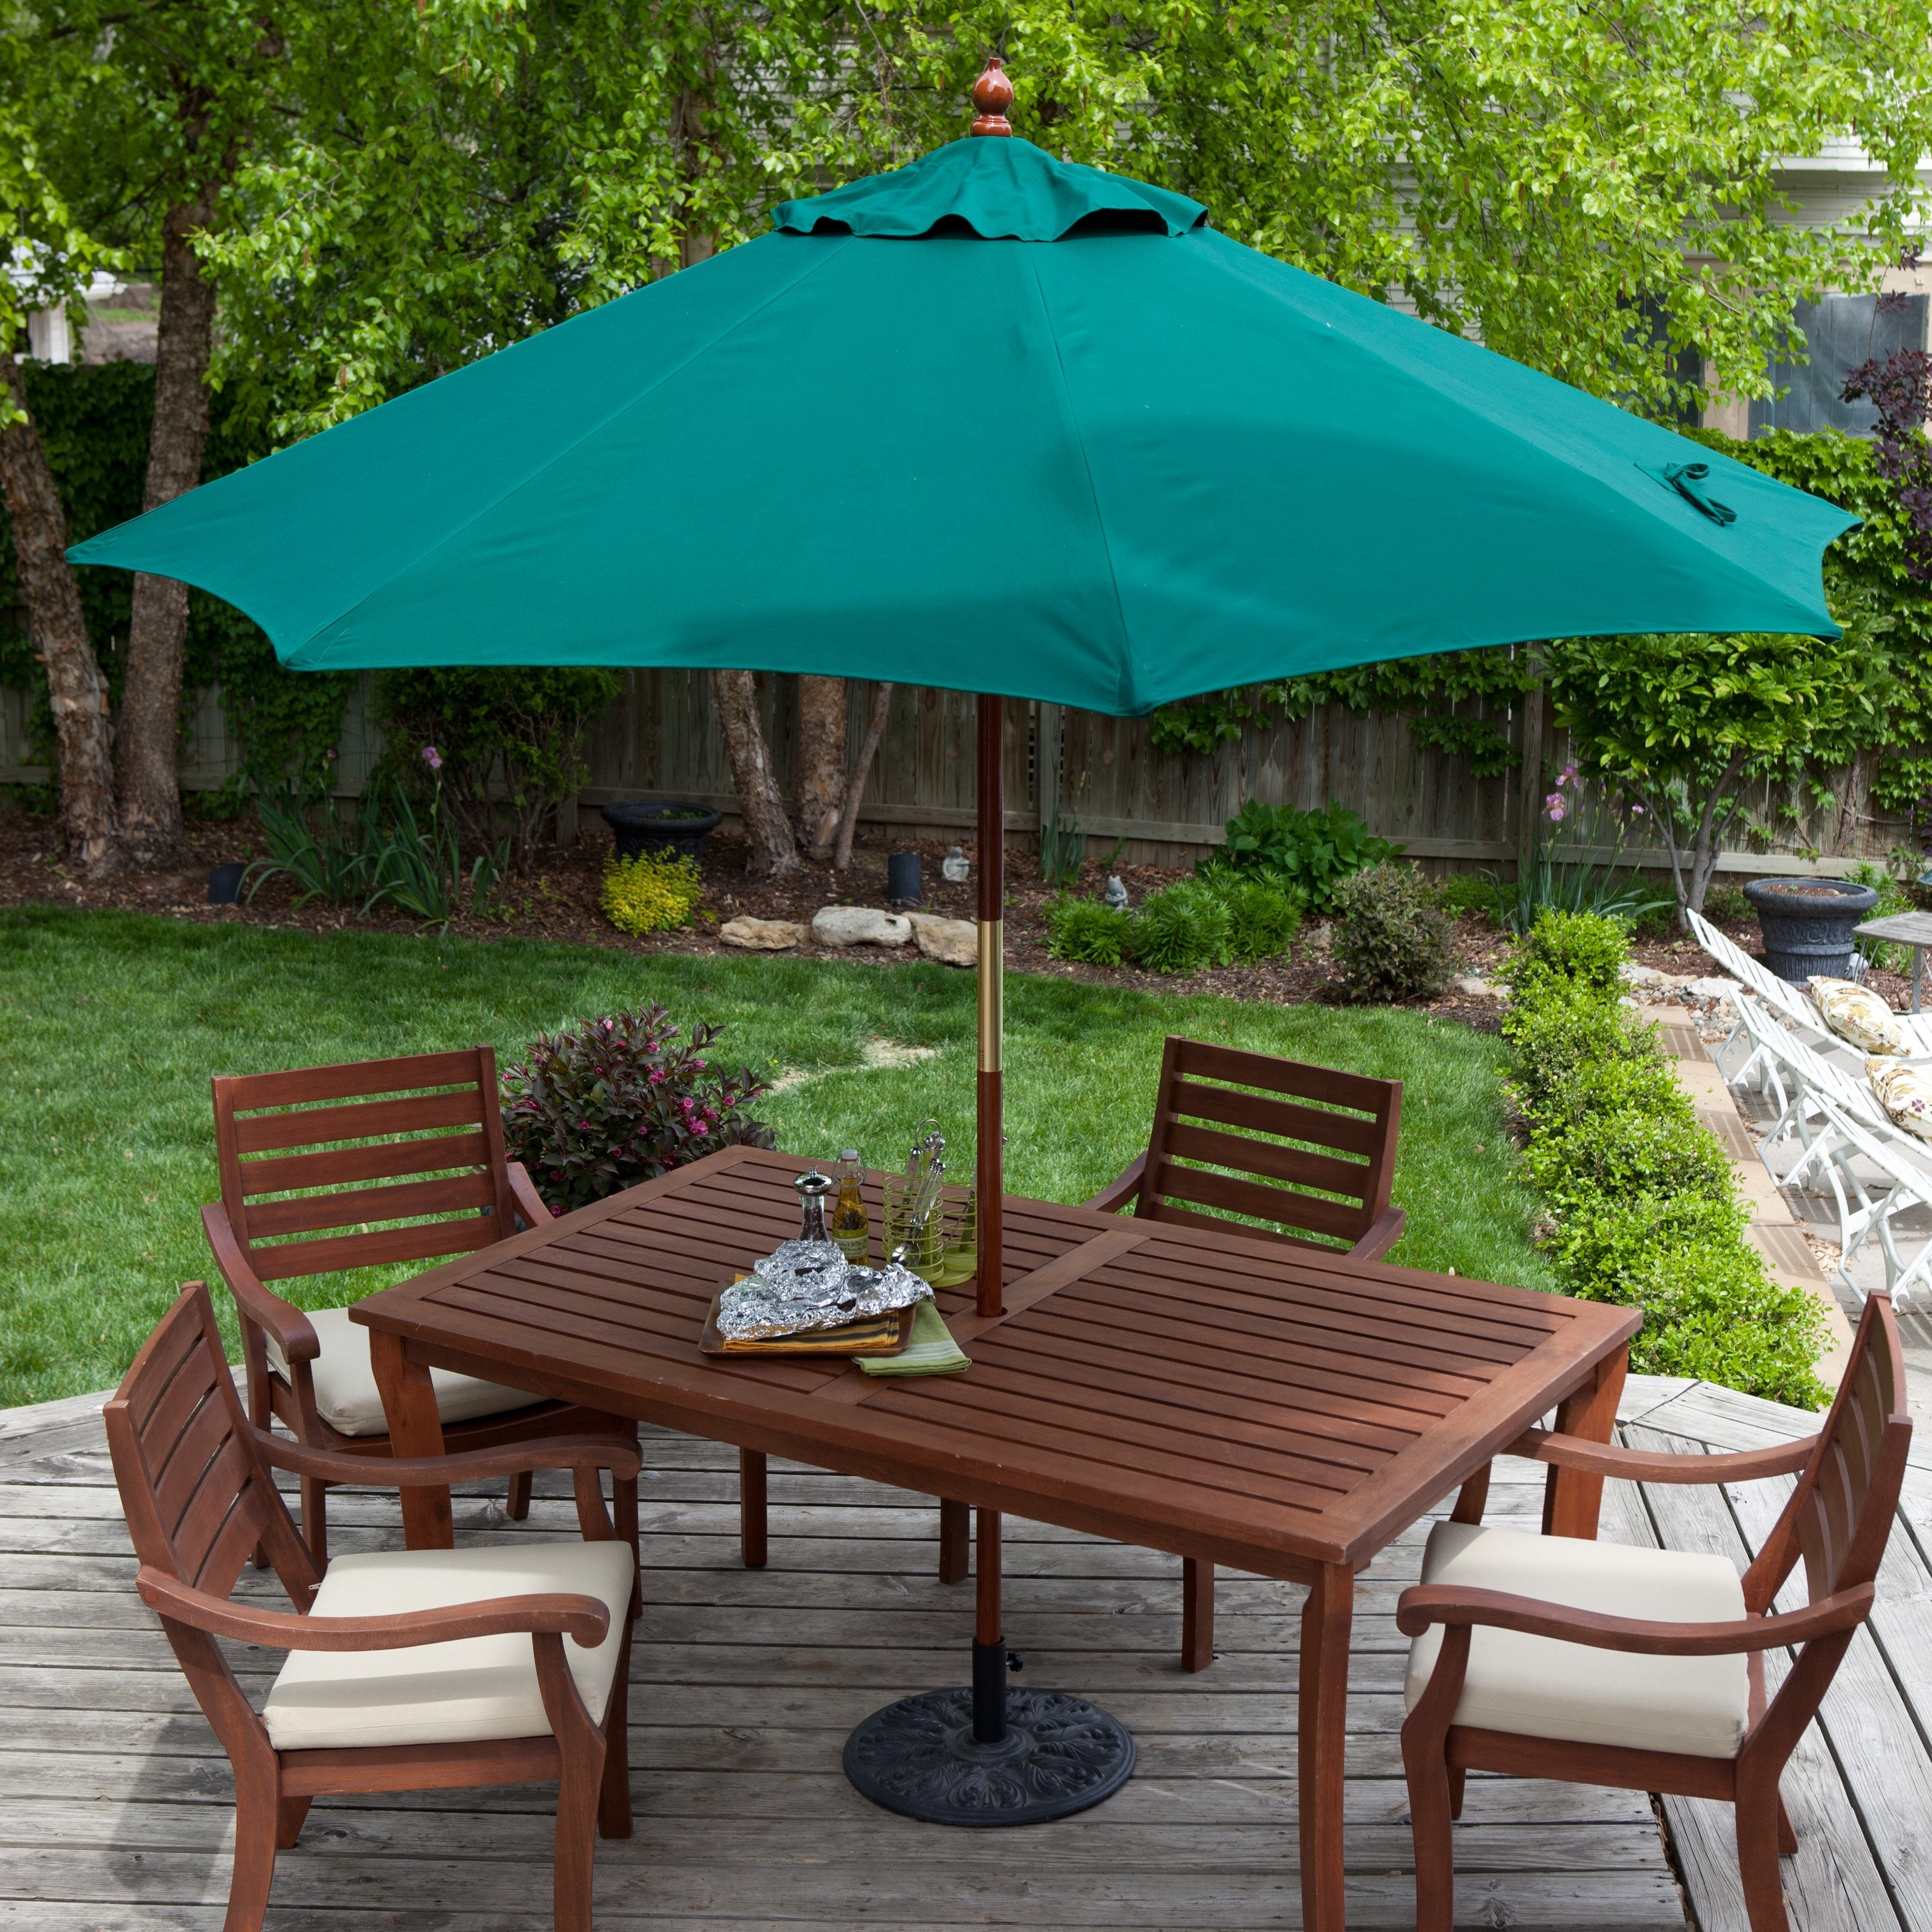 Belham Living 9 Ft. Wood Commercial Grade Sunbrella Market Umbrella Pertaining To Most Up To Date Patio Umbrellas For Tables (Gallery 8 of 20)